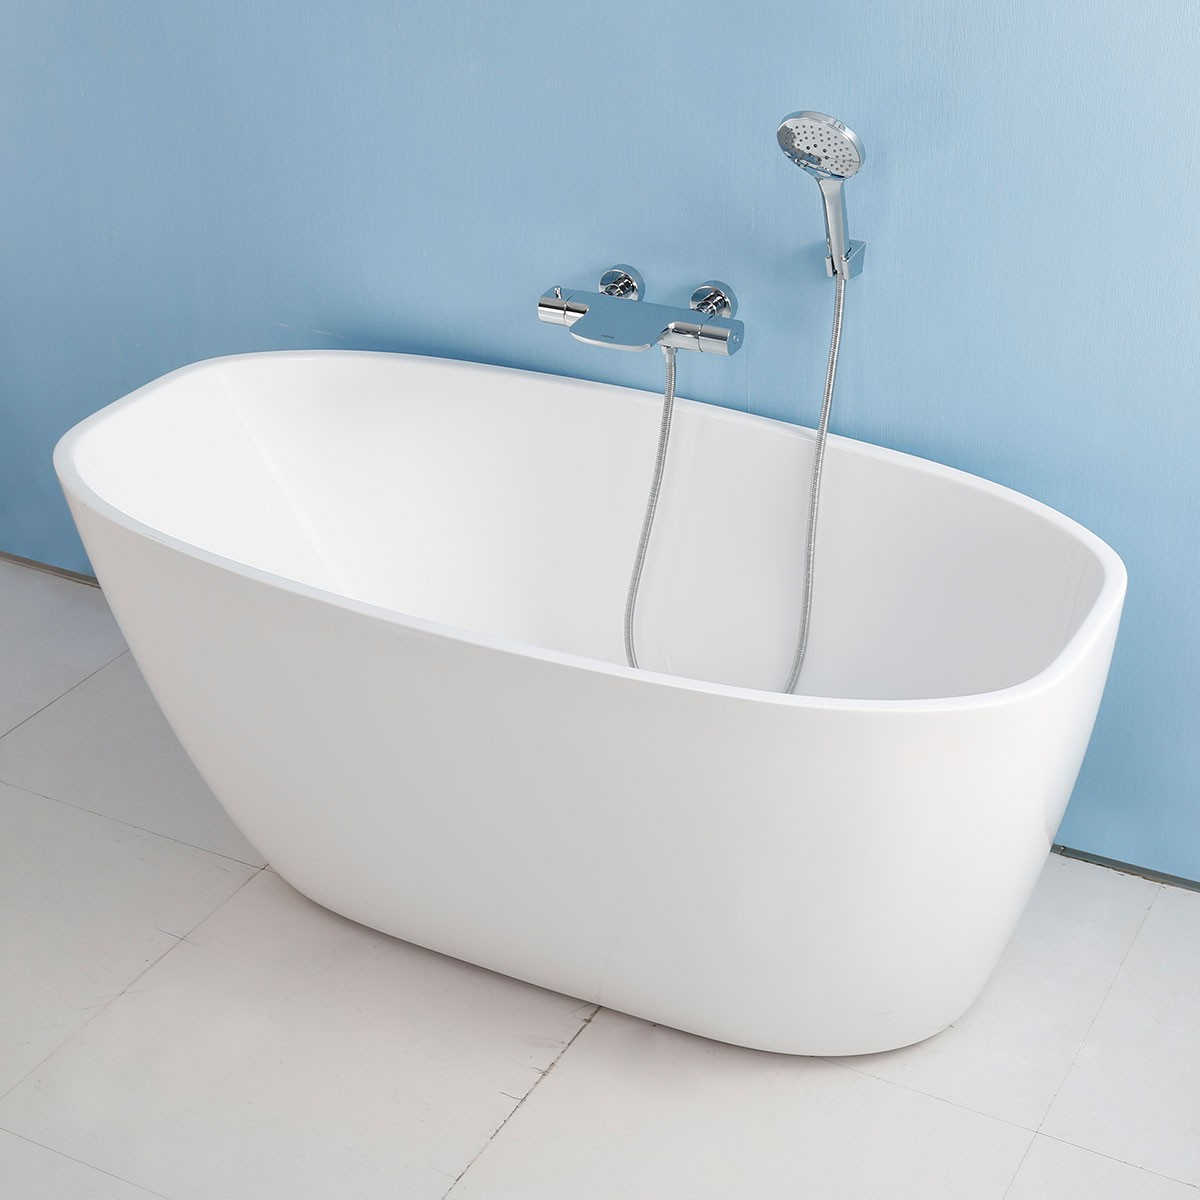 67 In Seamless Acrylic Freestanding Bathtub (DK-AT-15776W)